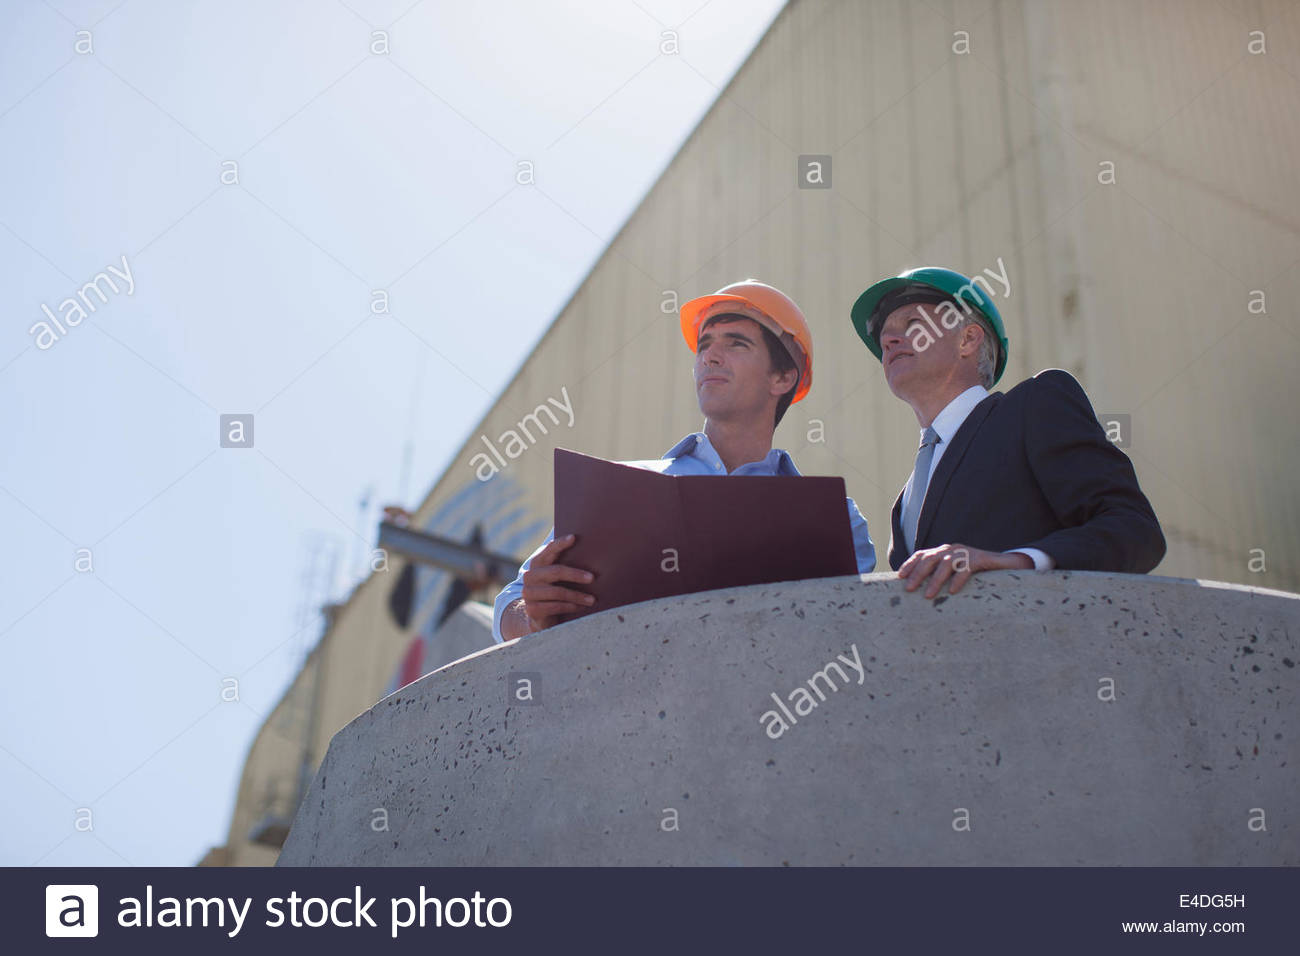 Businessman and worker in hard-hats outdoors - Stock Image